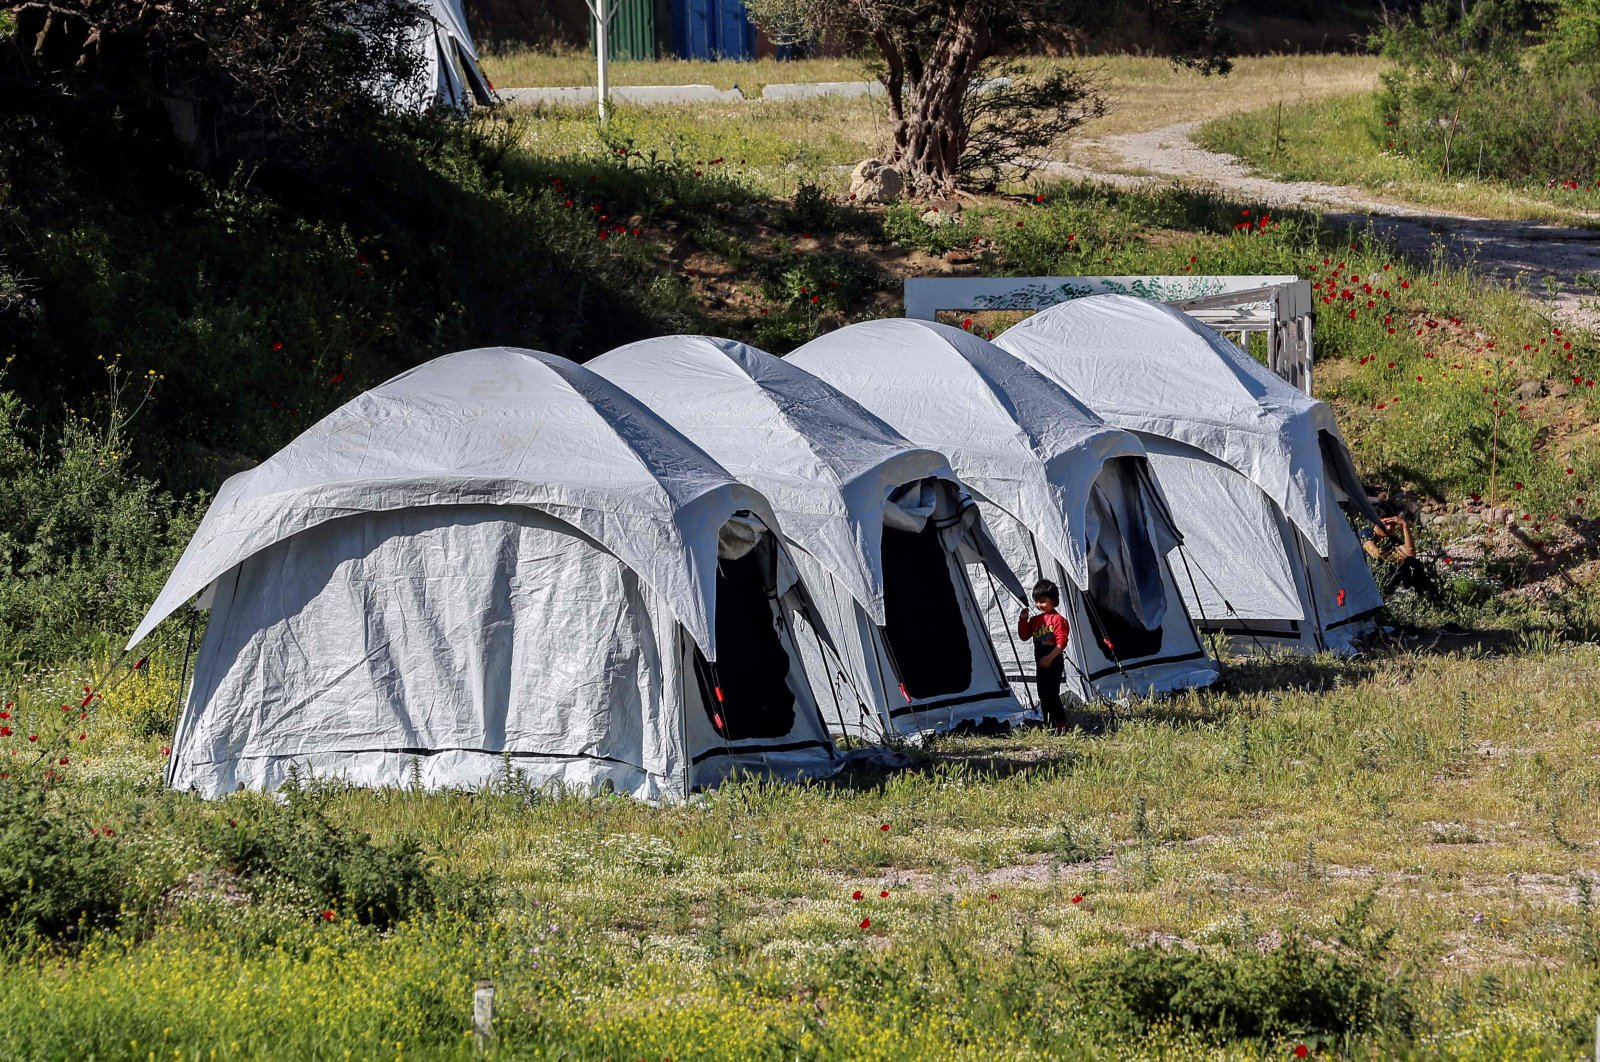 Children play outside the tents at a migrant and refugee camp where cases affected by the COVID-19 were detected, on the Greek mediterranean island of Lesbos, May 13, 2020. (AFP)